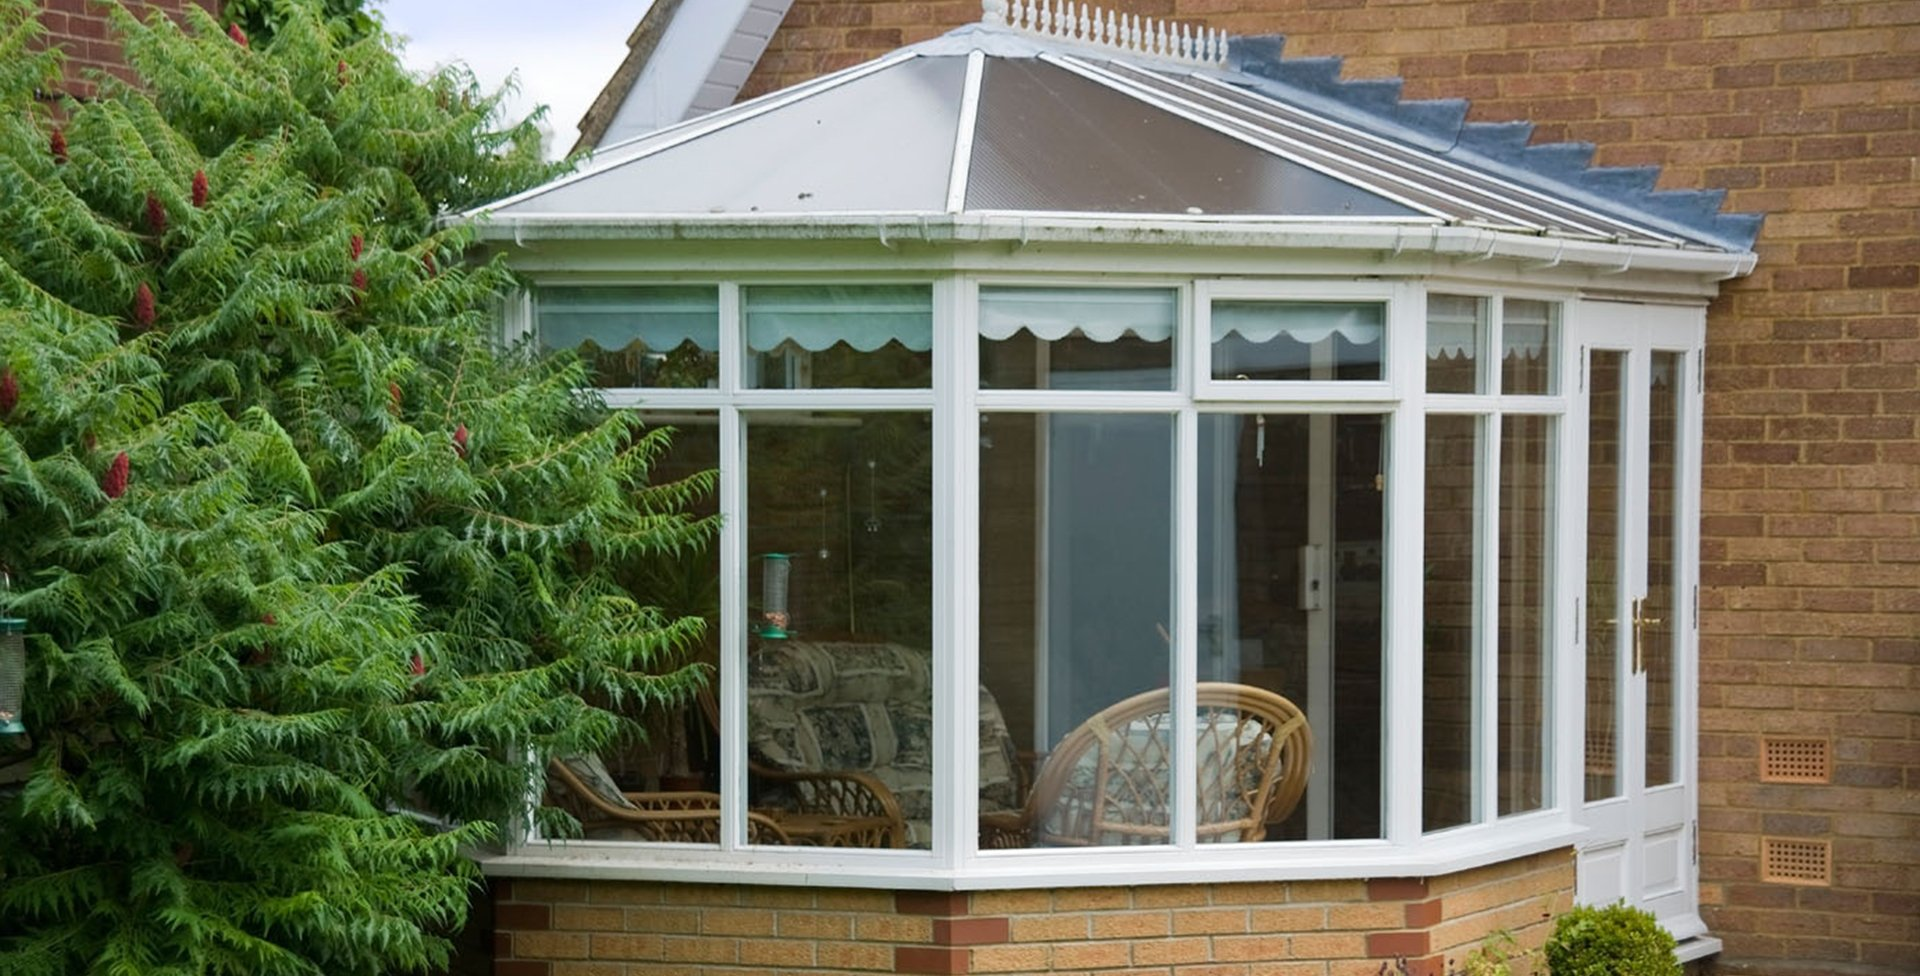 Conservatory glass windows